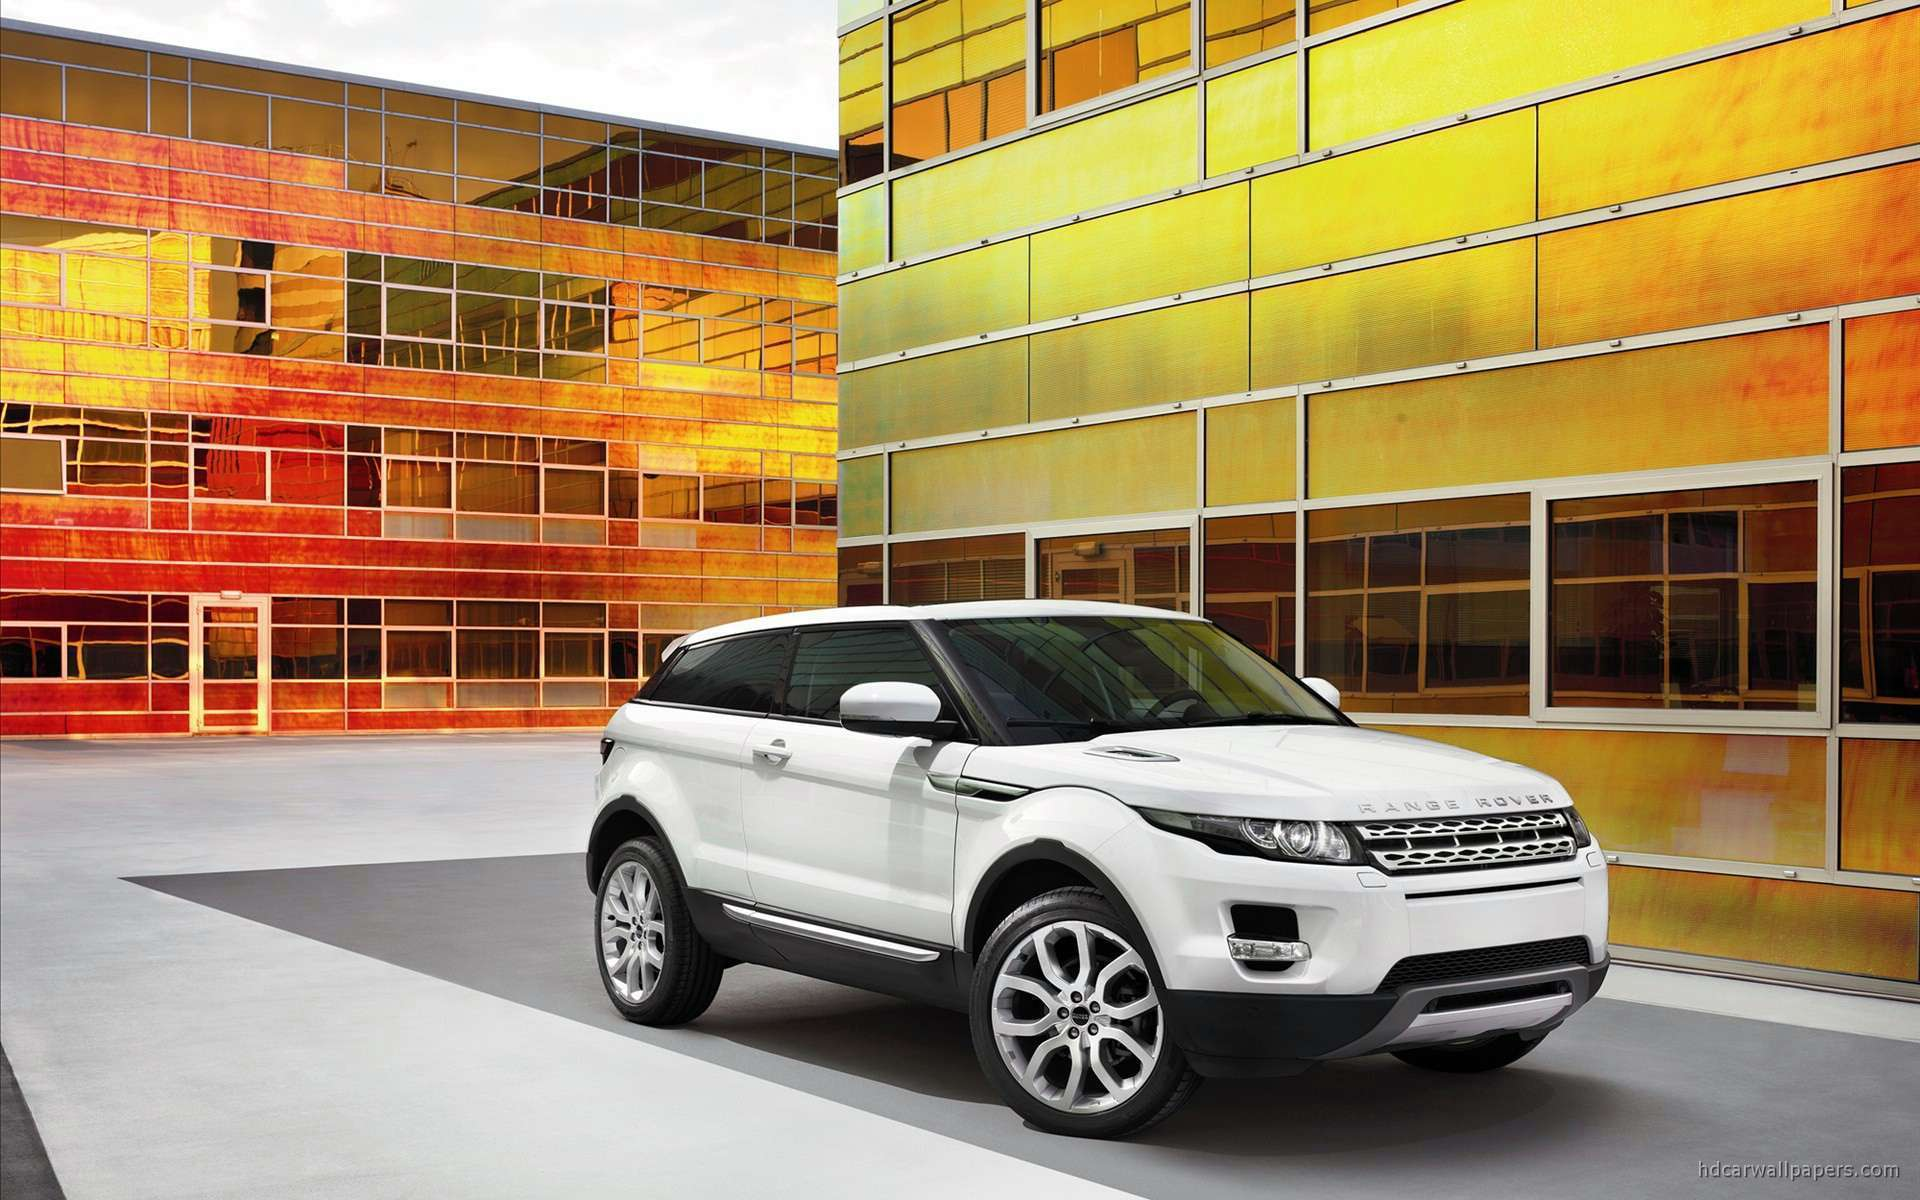 2011 Land Rover Range Rover Evoque Hd Wallpapers